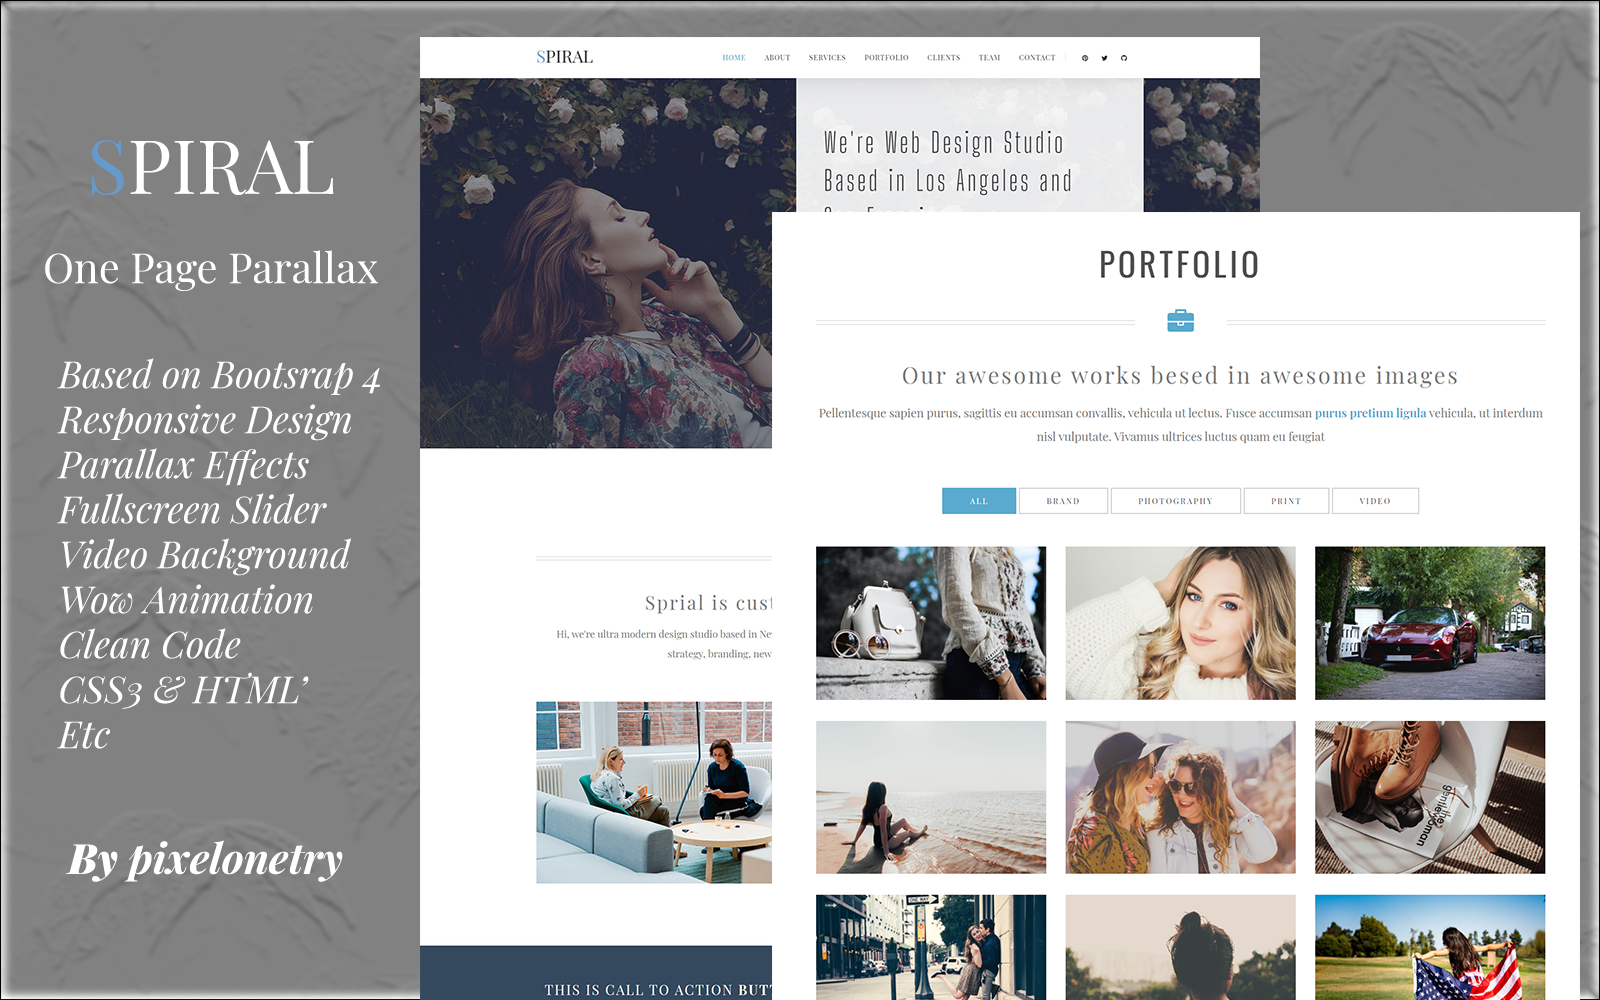 Spiral - One Page Parallax Landing Page Template